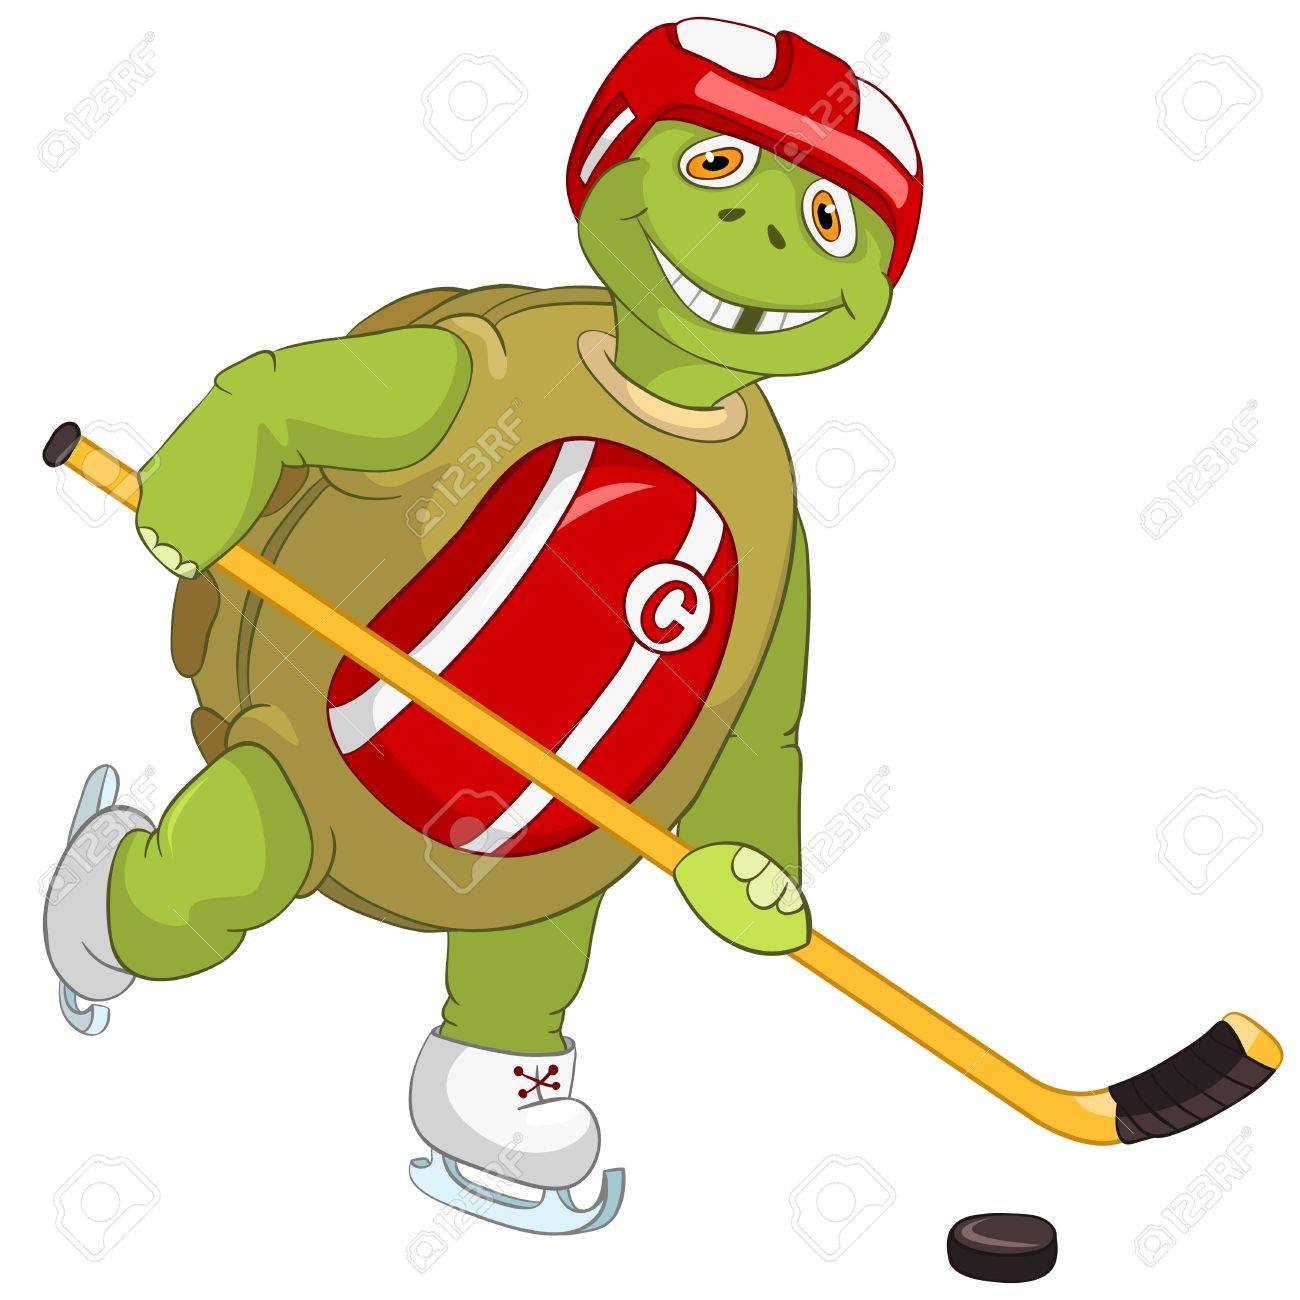 hight resolution of funny turtle hockey player stock vector 13533846